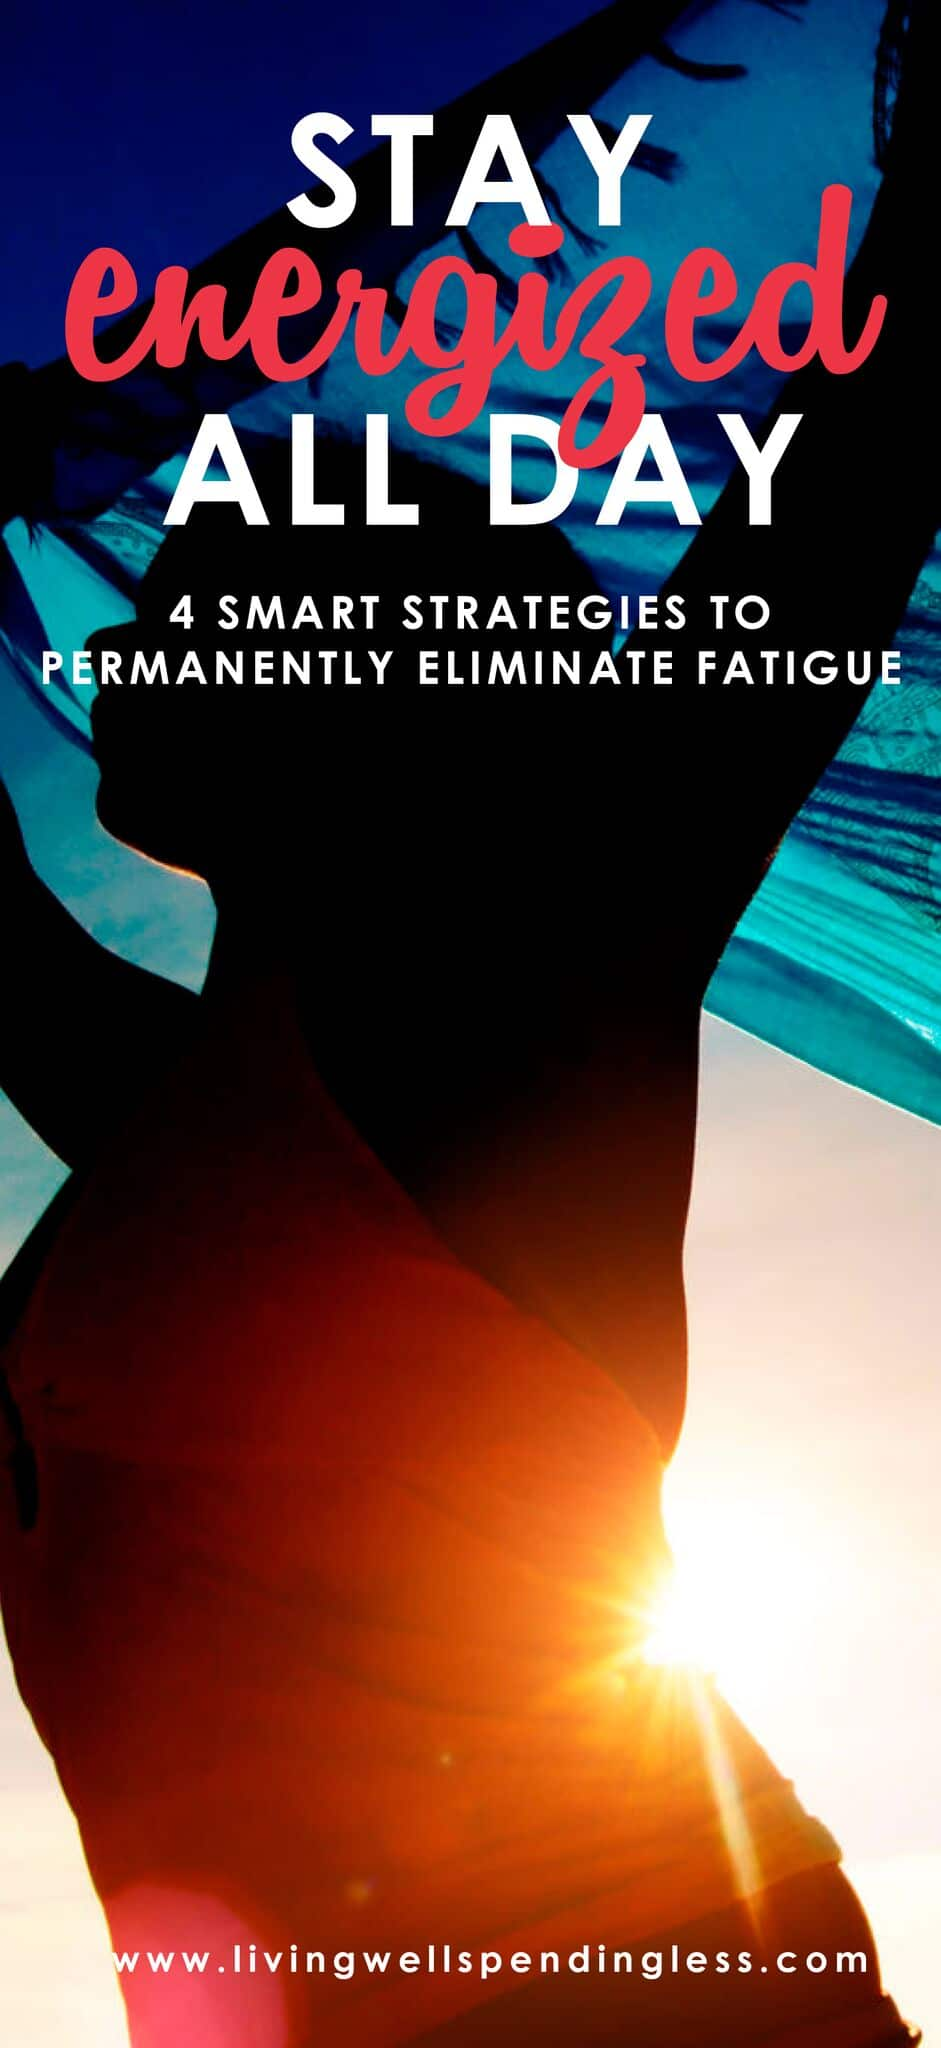 4 smart strategies for permanently eliminating fatigue.